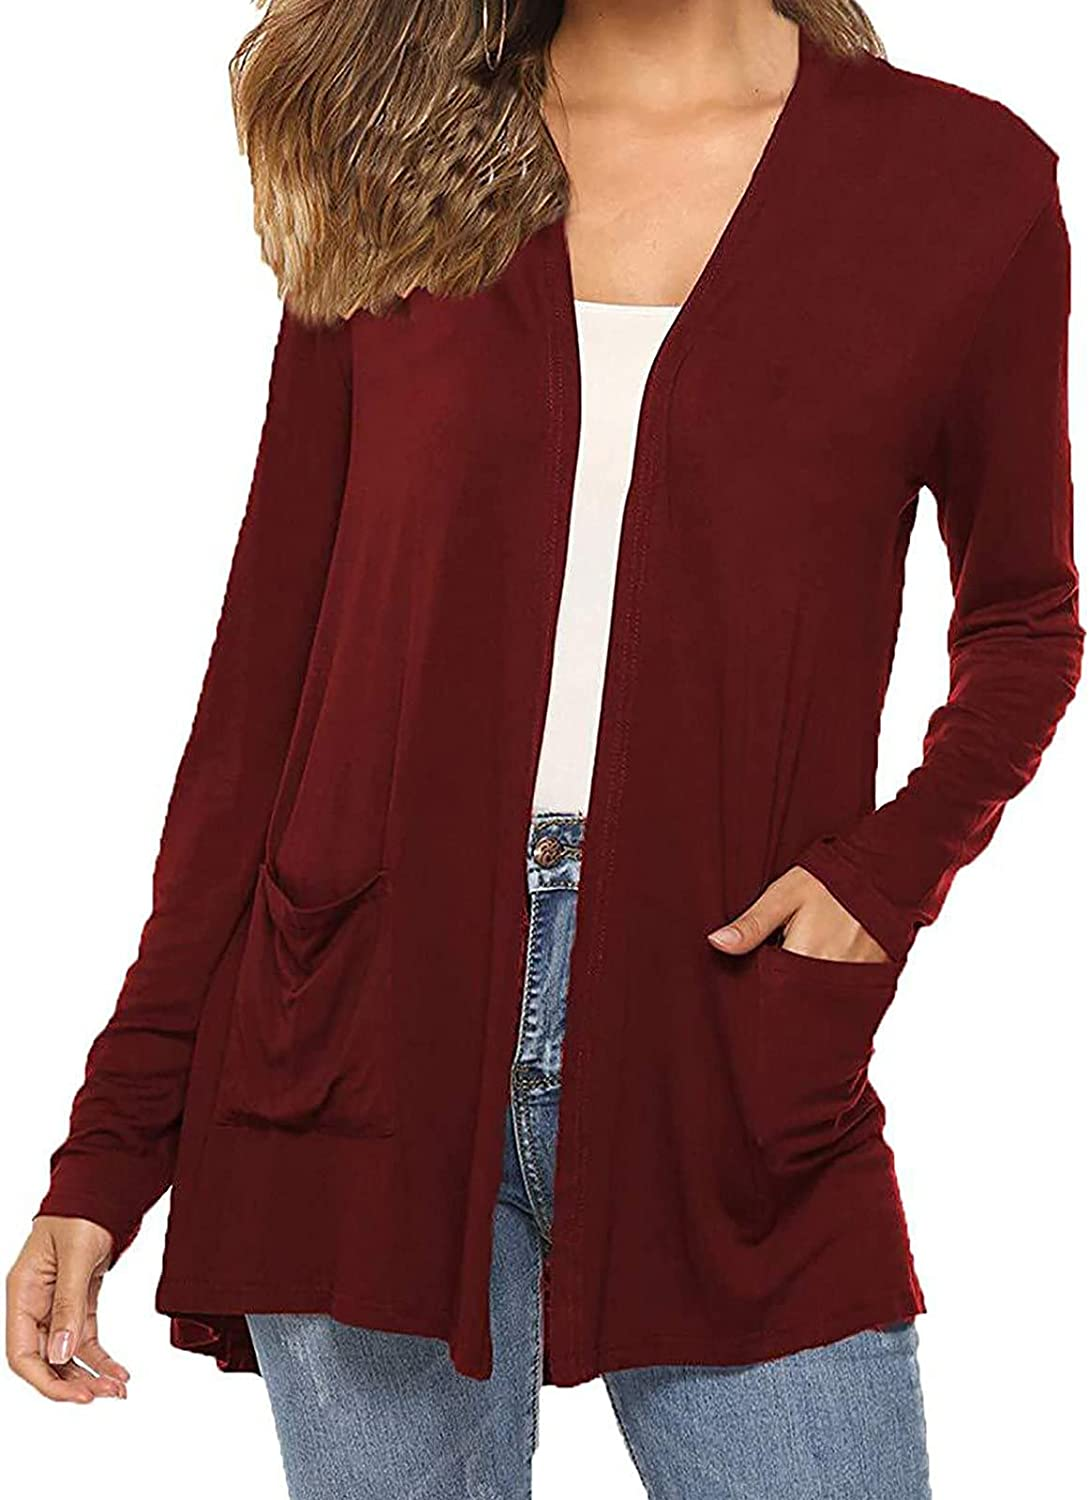 RFNIU Cardigan For Women Lightweight Long Sleeve Soft Kimono Open Front Cardigans With Pockets Casual Solid Jacket Tops